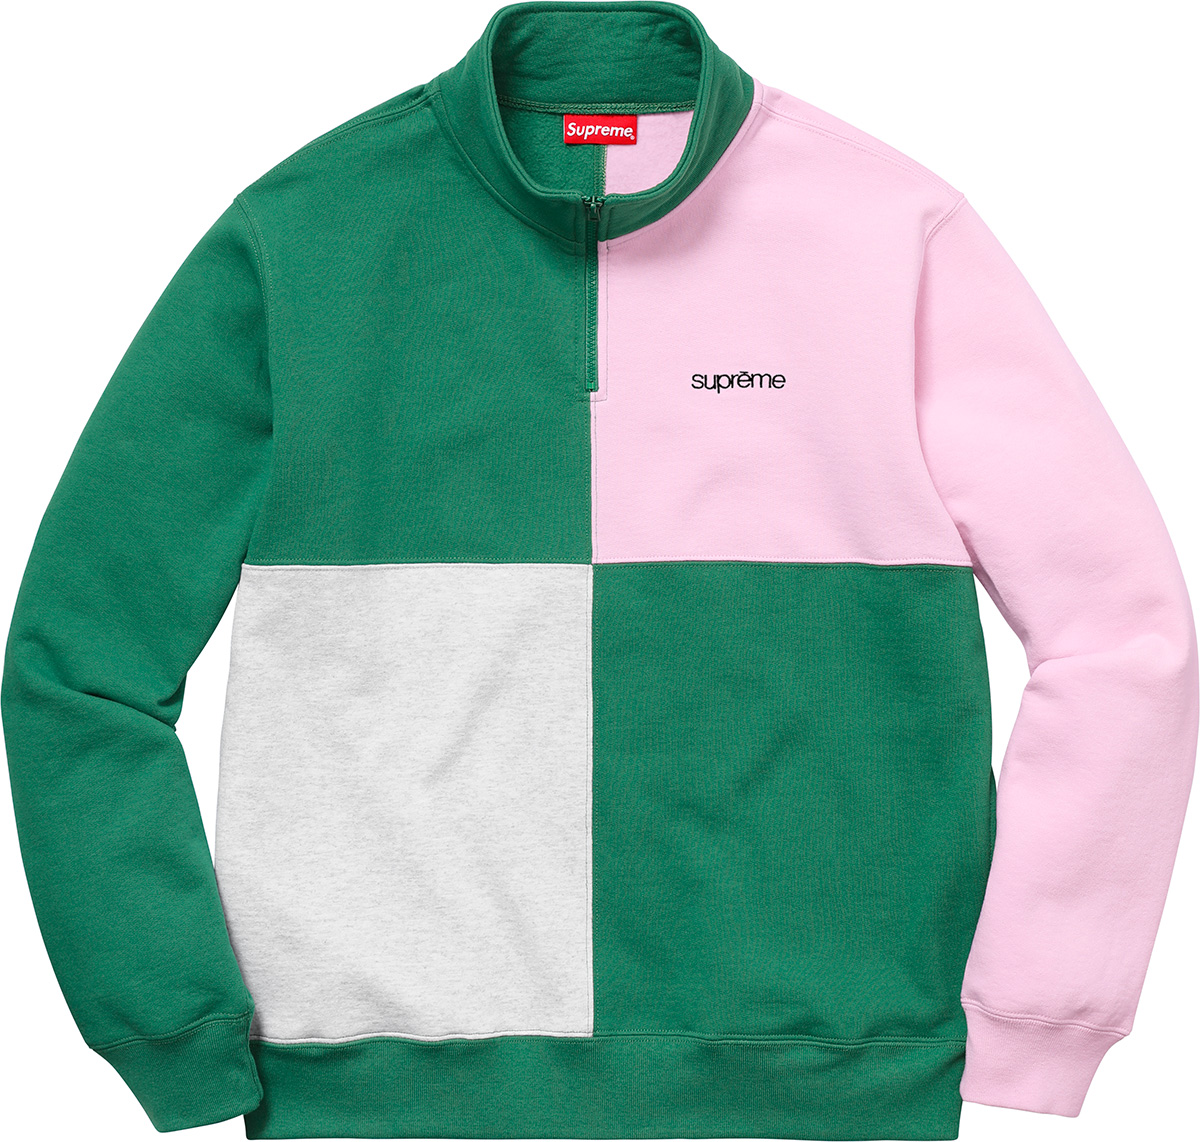 supreme-18ss-spring-summer-color-blocked-half-zip-sweatshirt